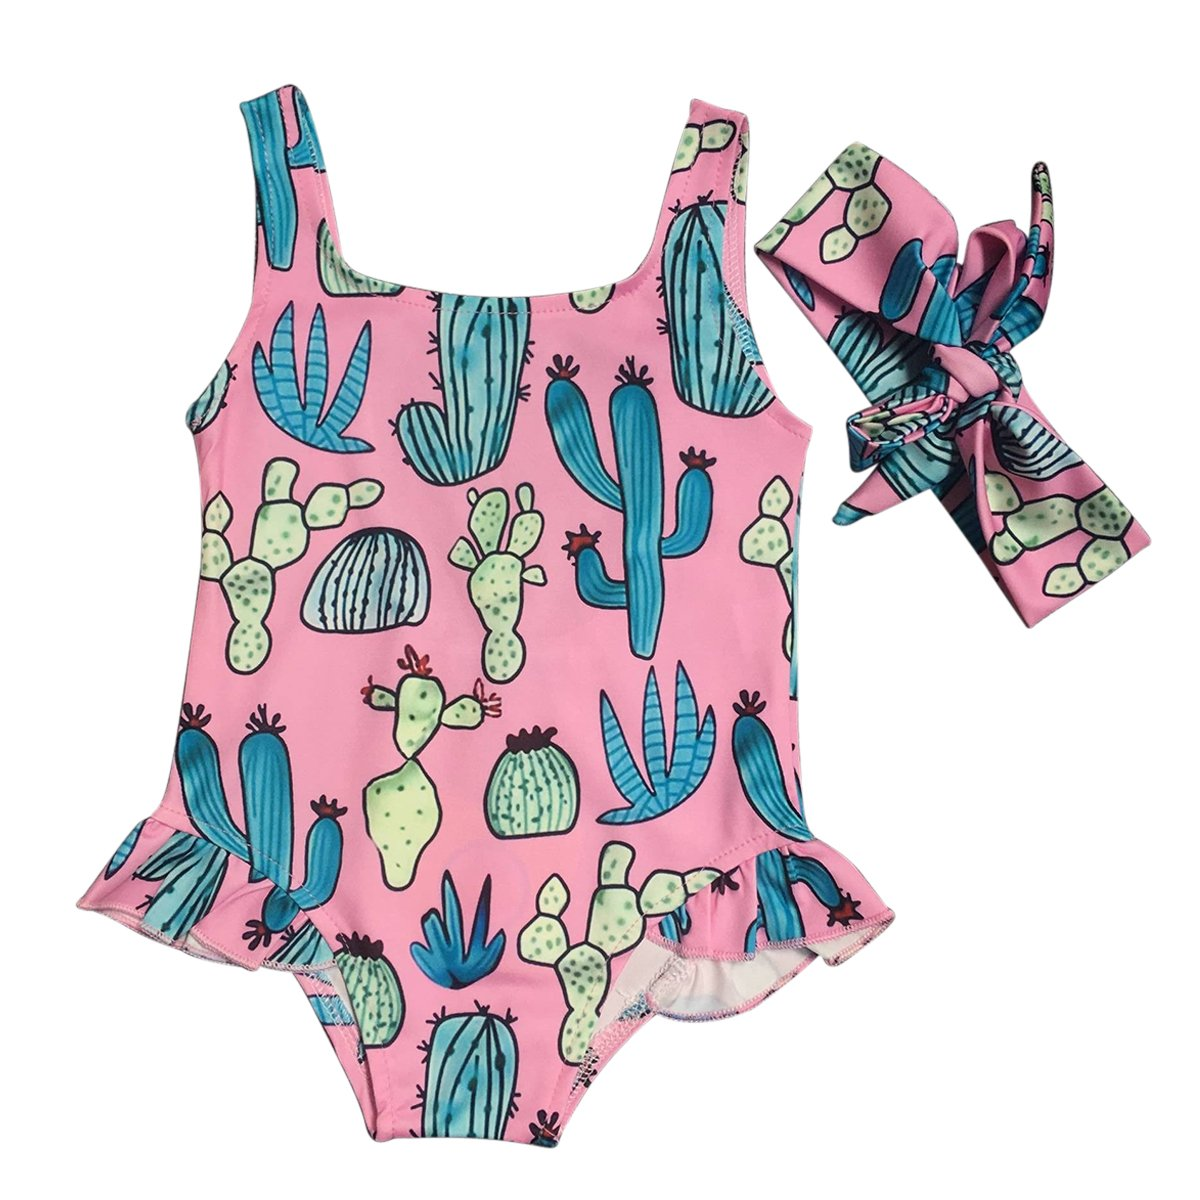 Infant Toddler Baby Girl Cactus Print One Piece Beachwear Swimsuit + Headband